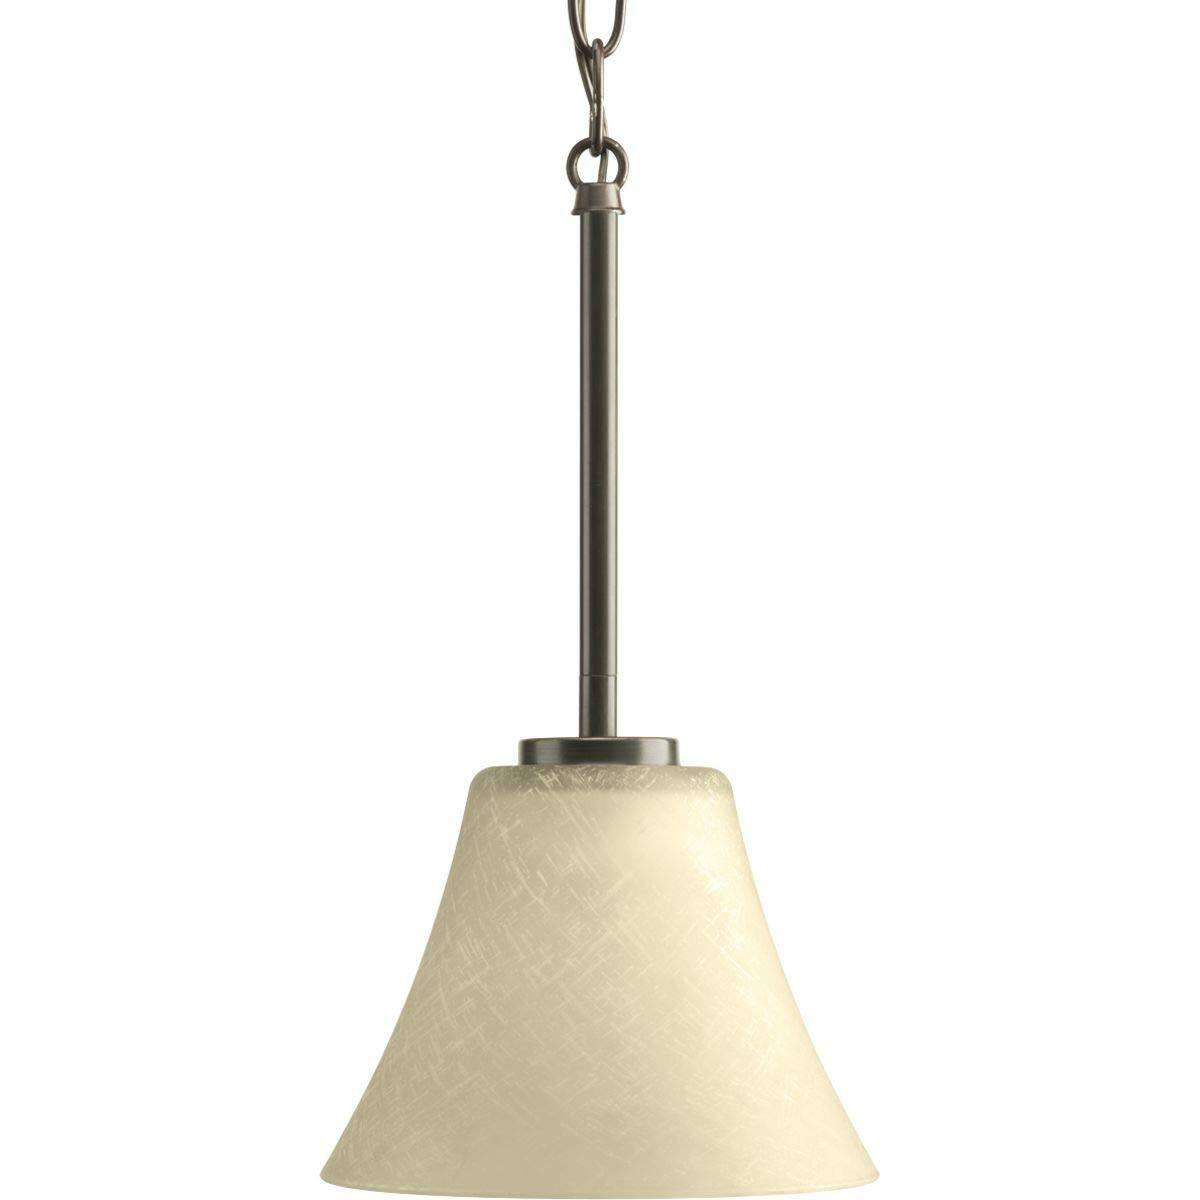 "Progress Lighting Bravo 7"" Wide Mini Pendant (Antique Bronze) $14.40 + FS w/ Prime"